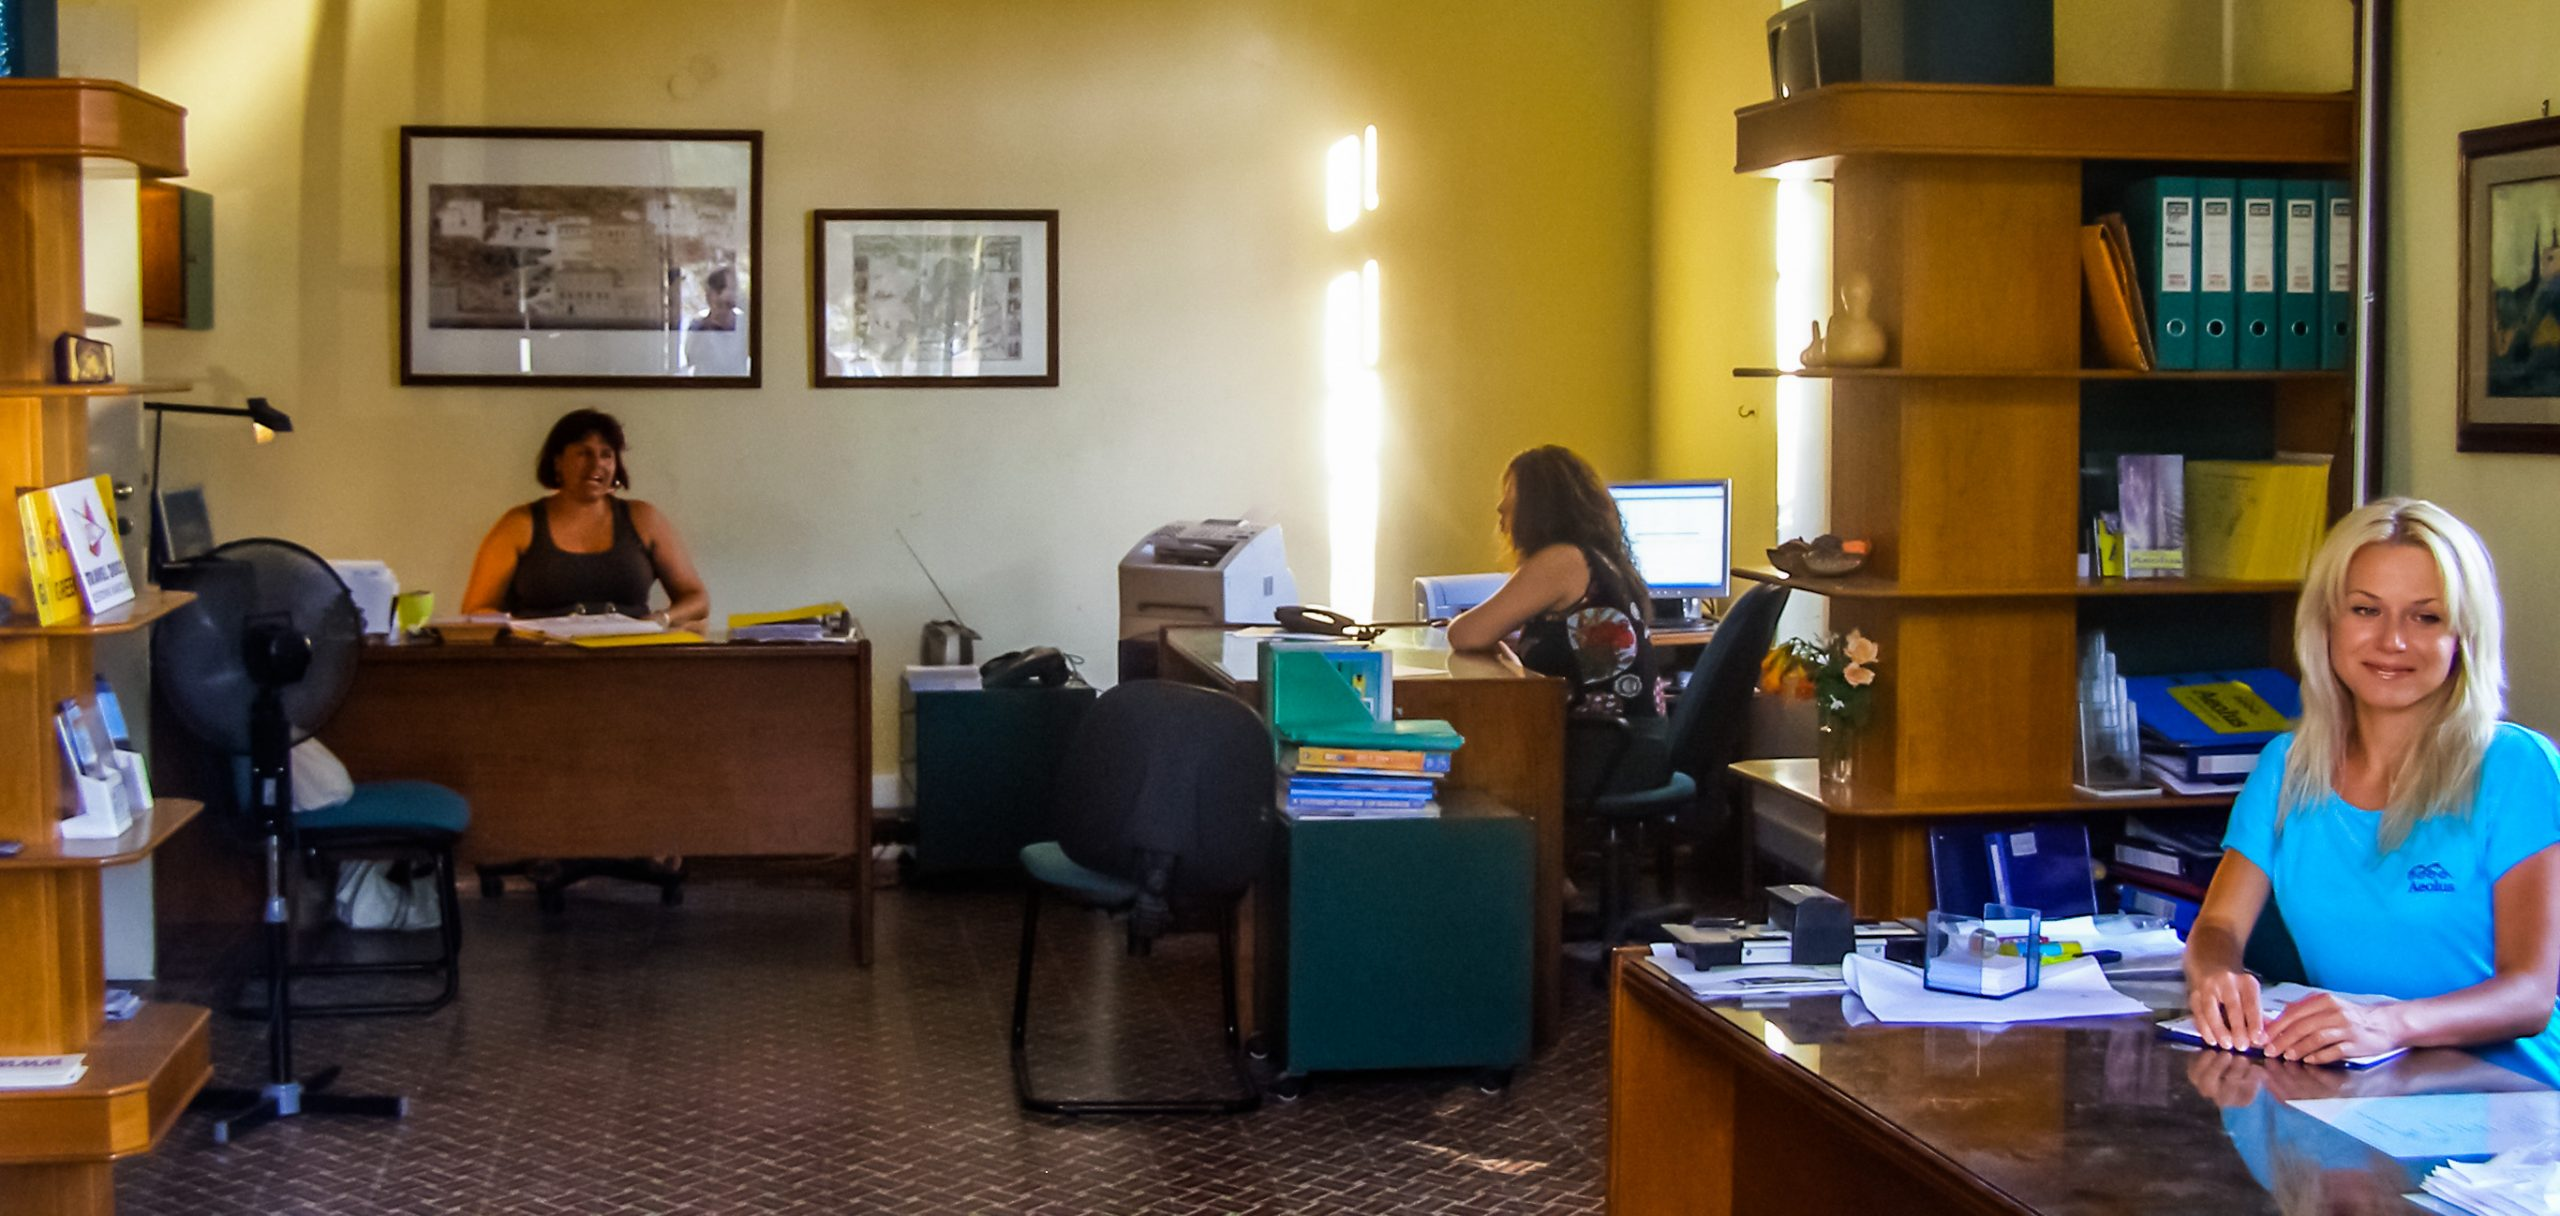 South Crete Tours - Office Welcome Room